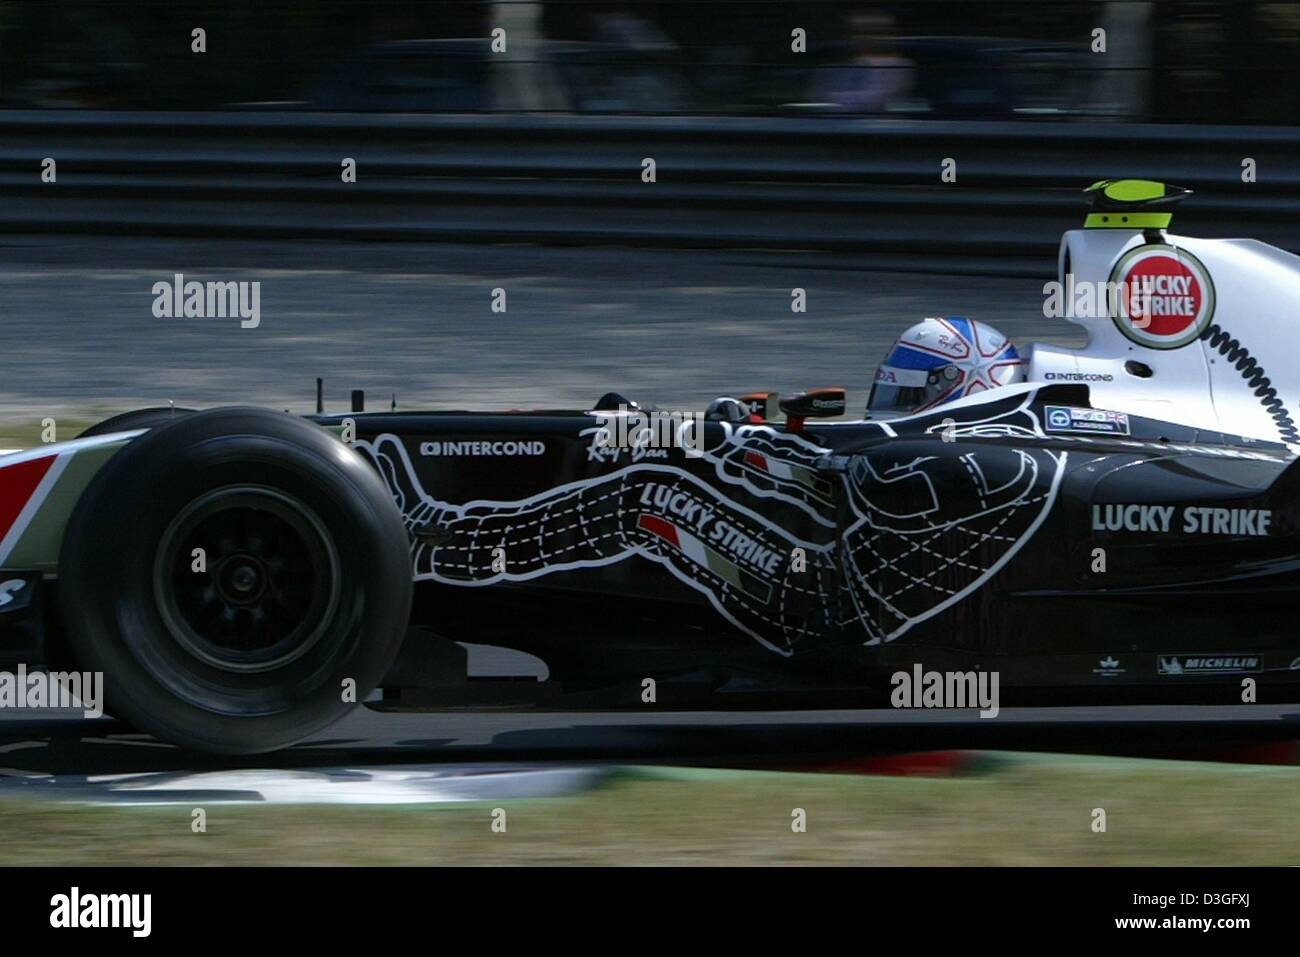 Formula One Car Racing Drawing High Resolution Stock Photography And Images Alamy